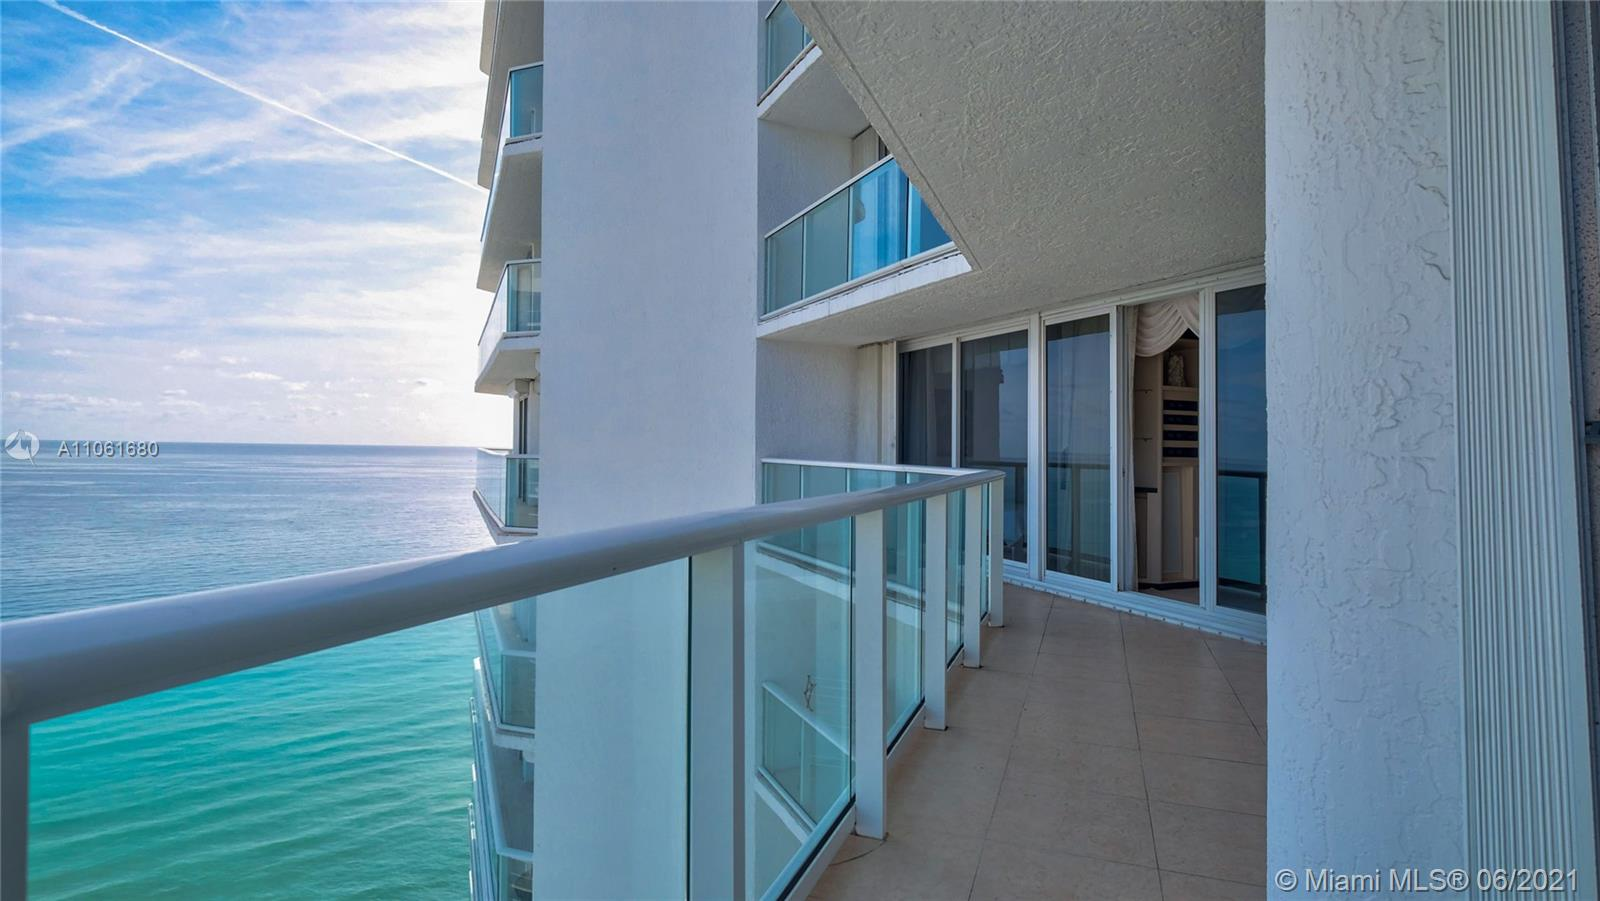 Oceania Two #2525 - 16445 Collins Ave #2525, Sunny Isles Beach, FL 33160